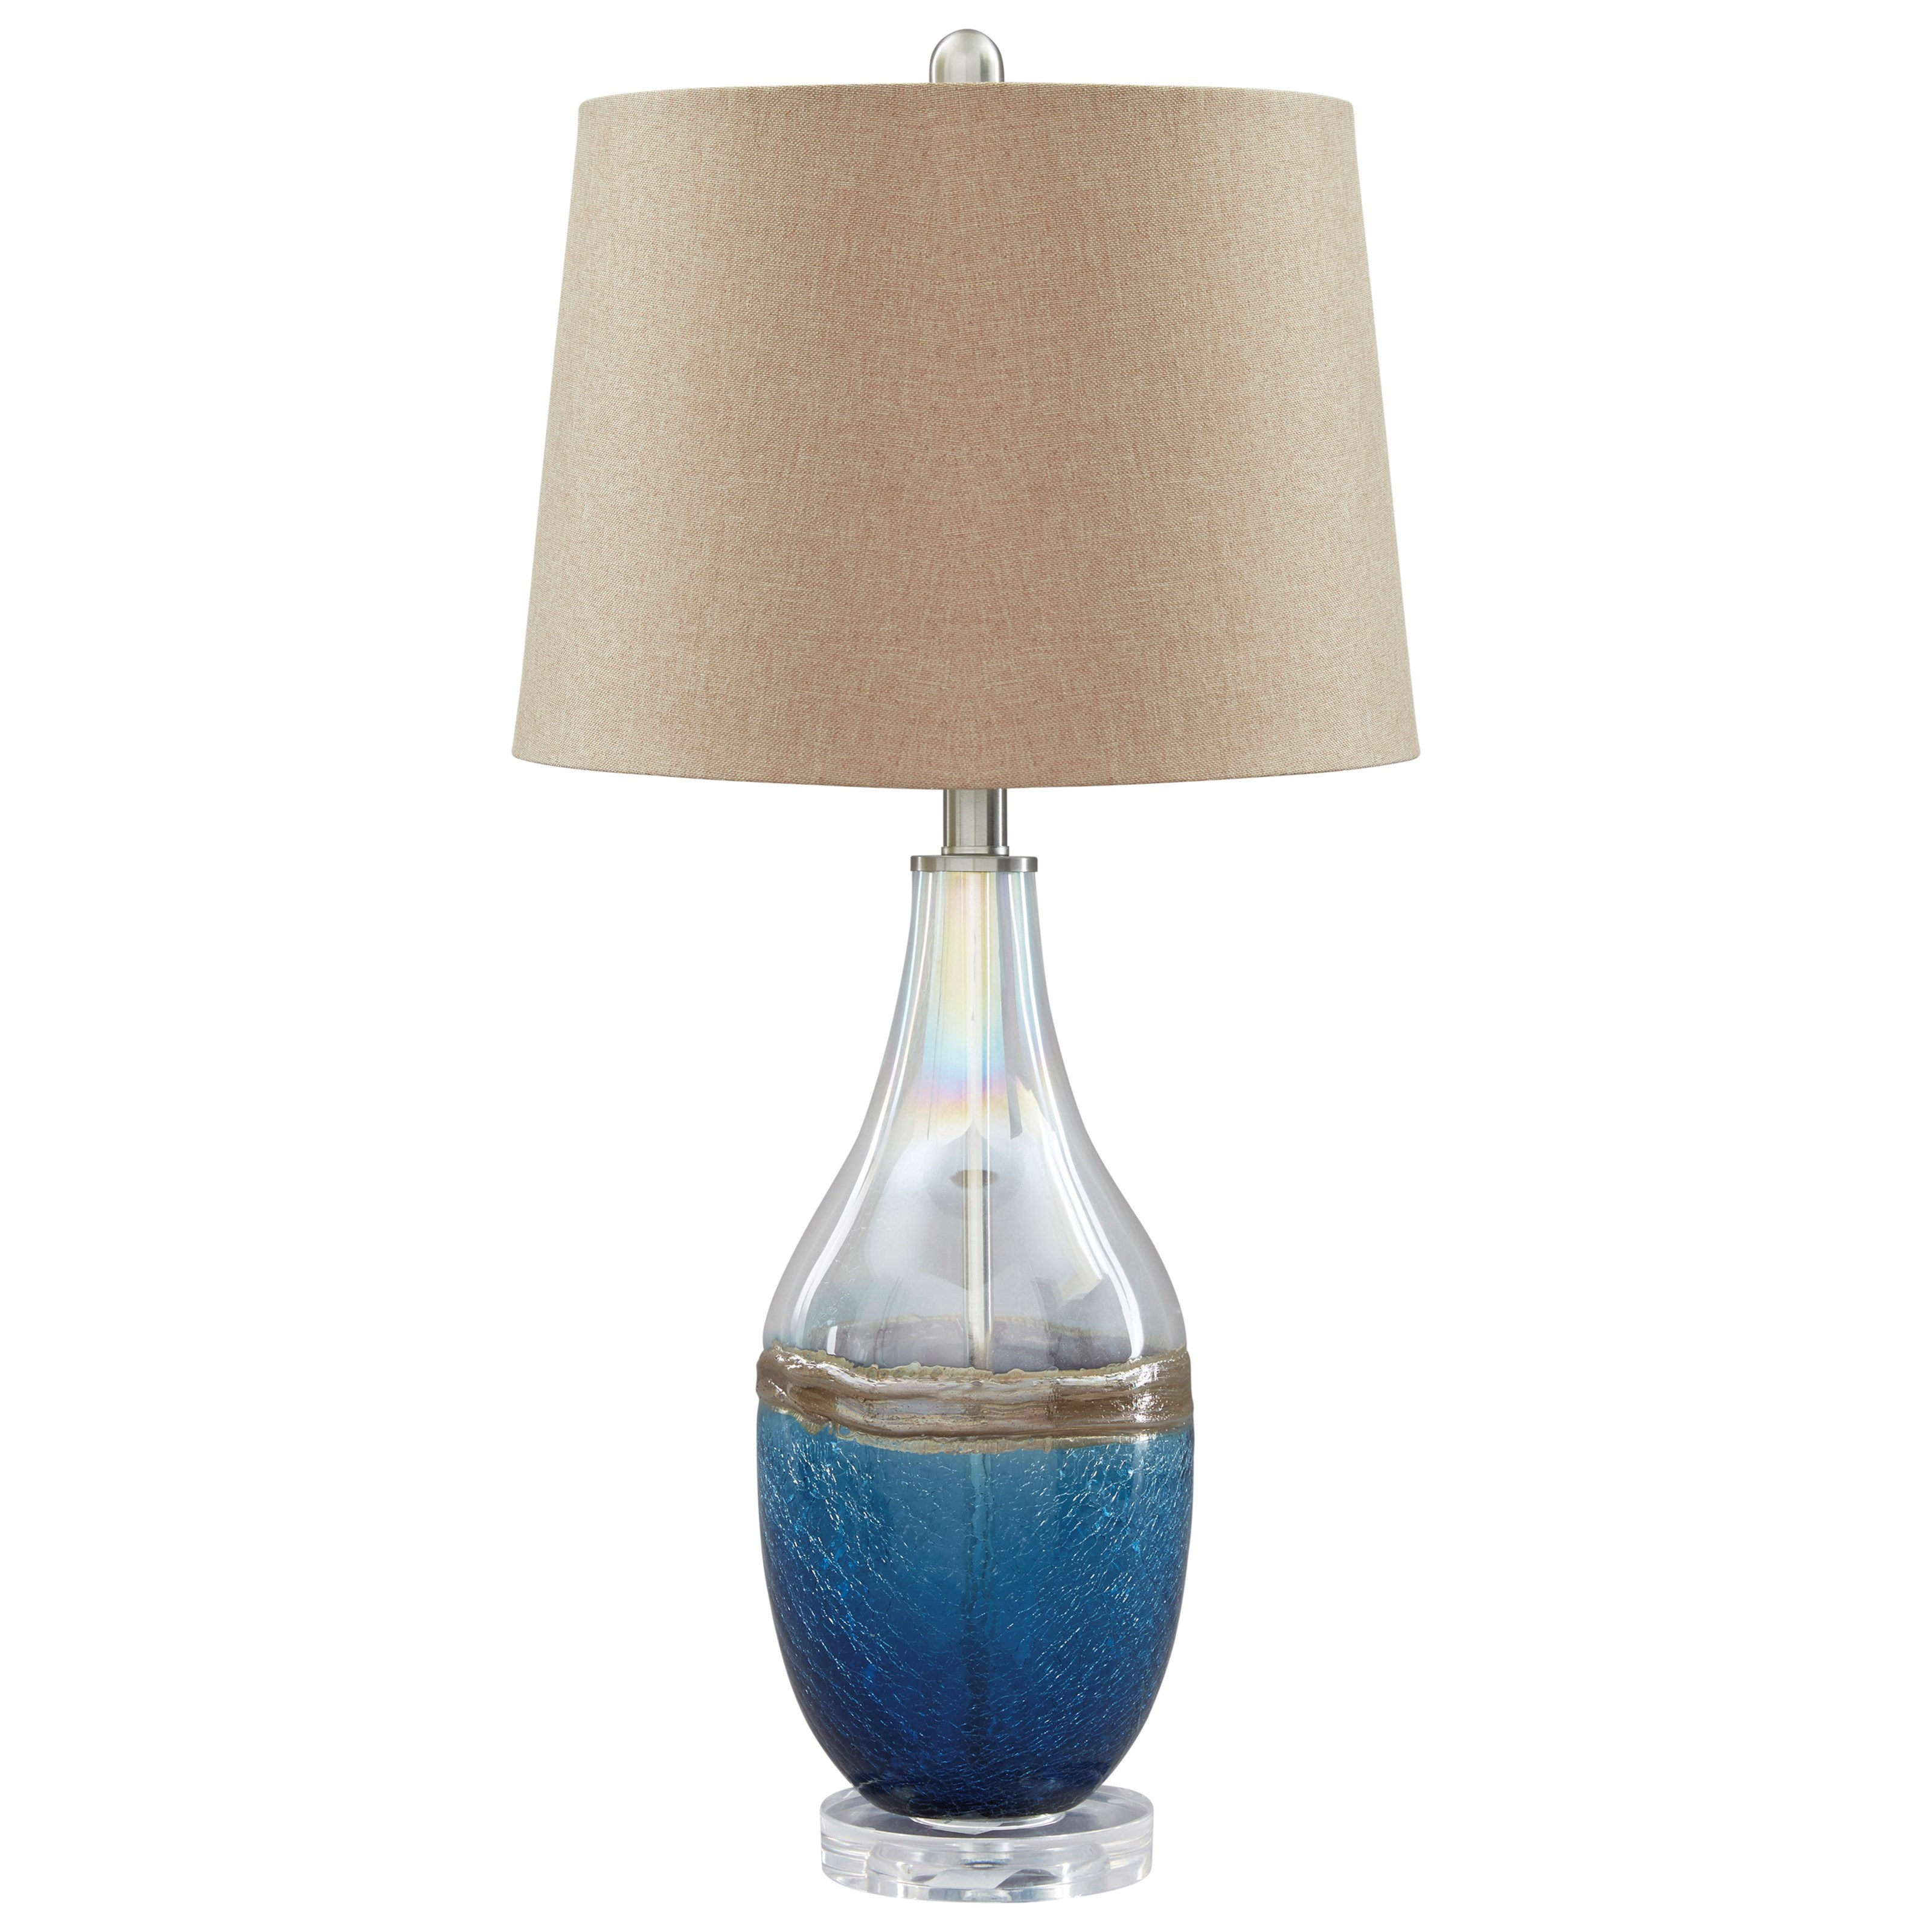 Lamps - Contemporary Johanna Glass Table Lamp by Signature Design by Ashley at Sparks HomeStore